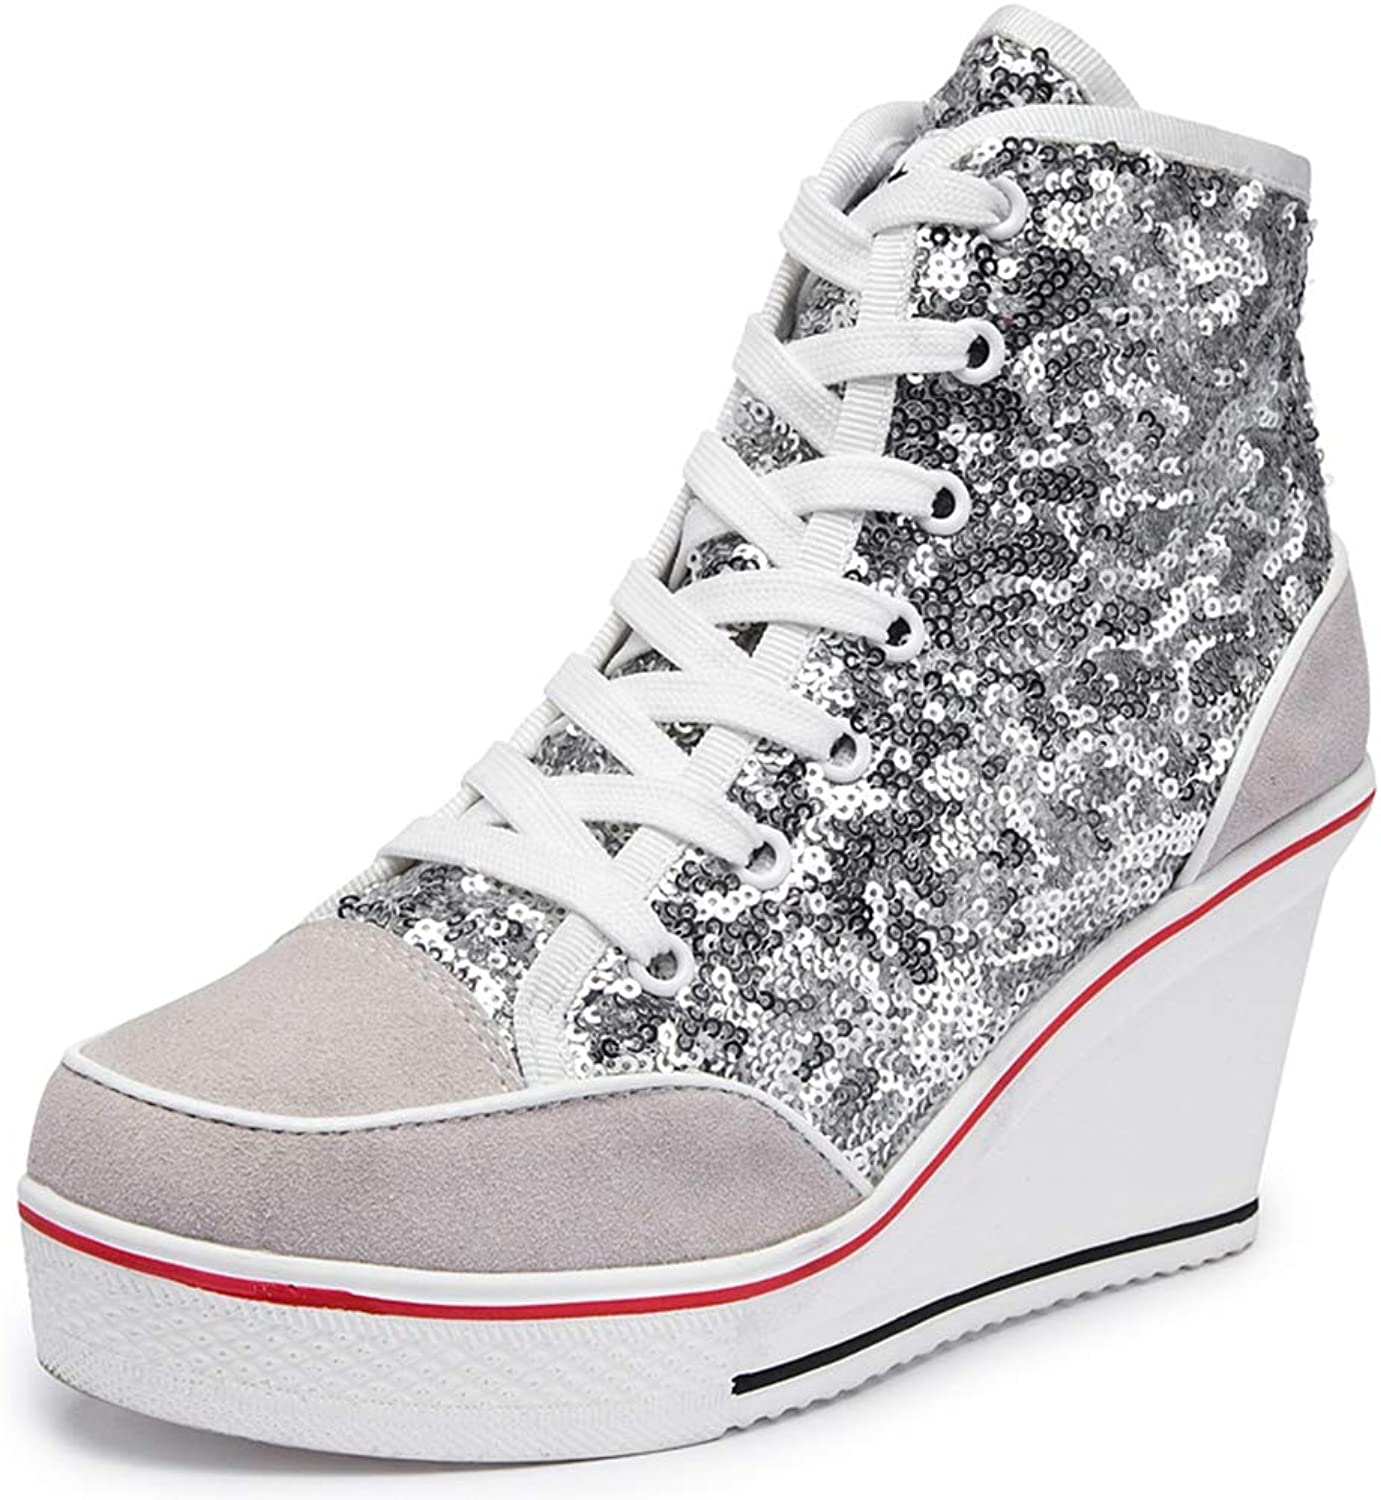 NOMIMAS Women Wedge Sneakers Lace-Up Spring Autumn High Heel Mixed colors Glitter Vulcanize Flock Platform Casual shoes